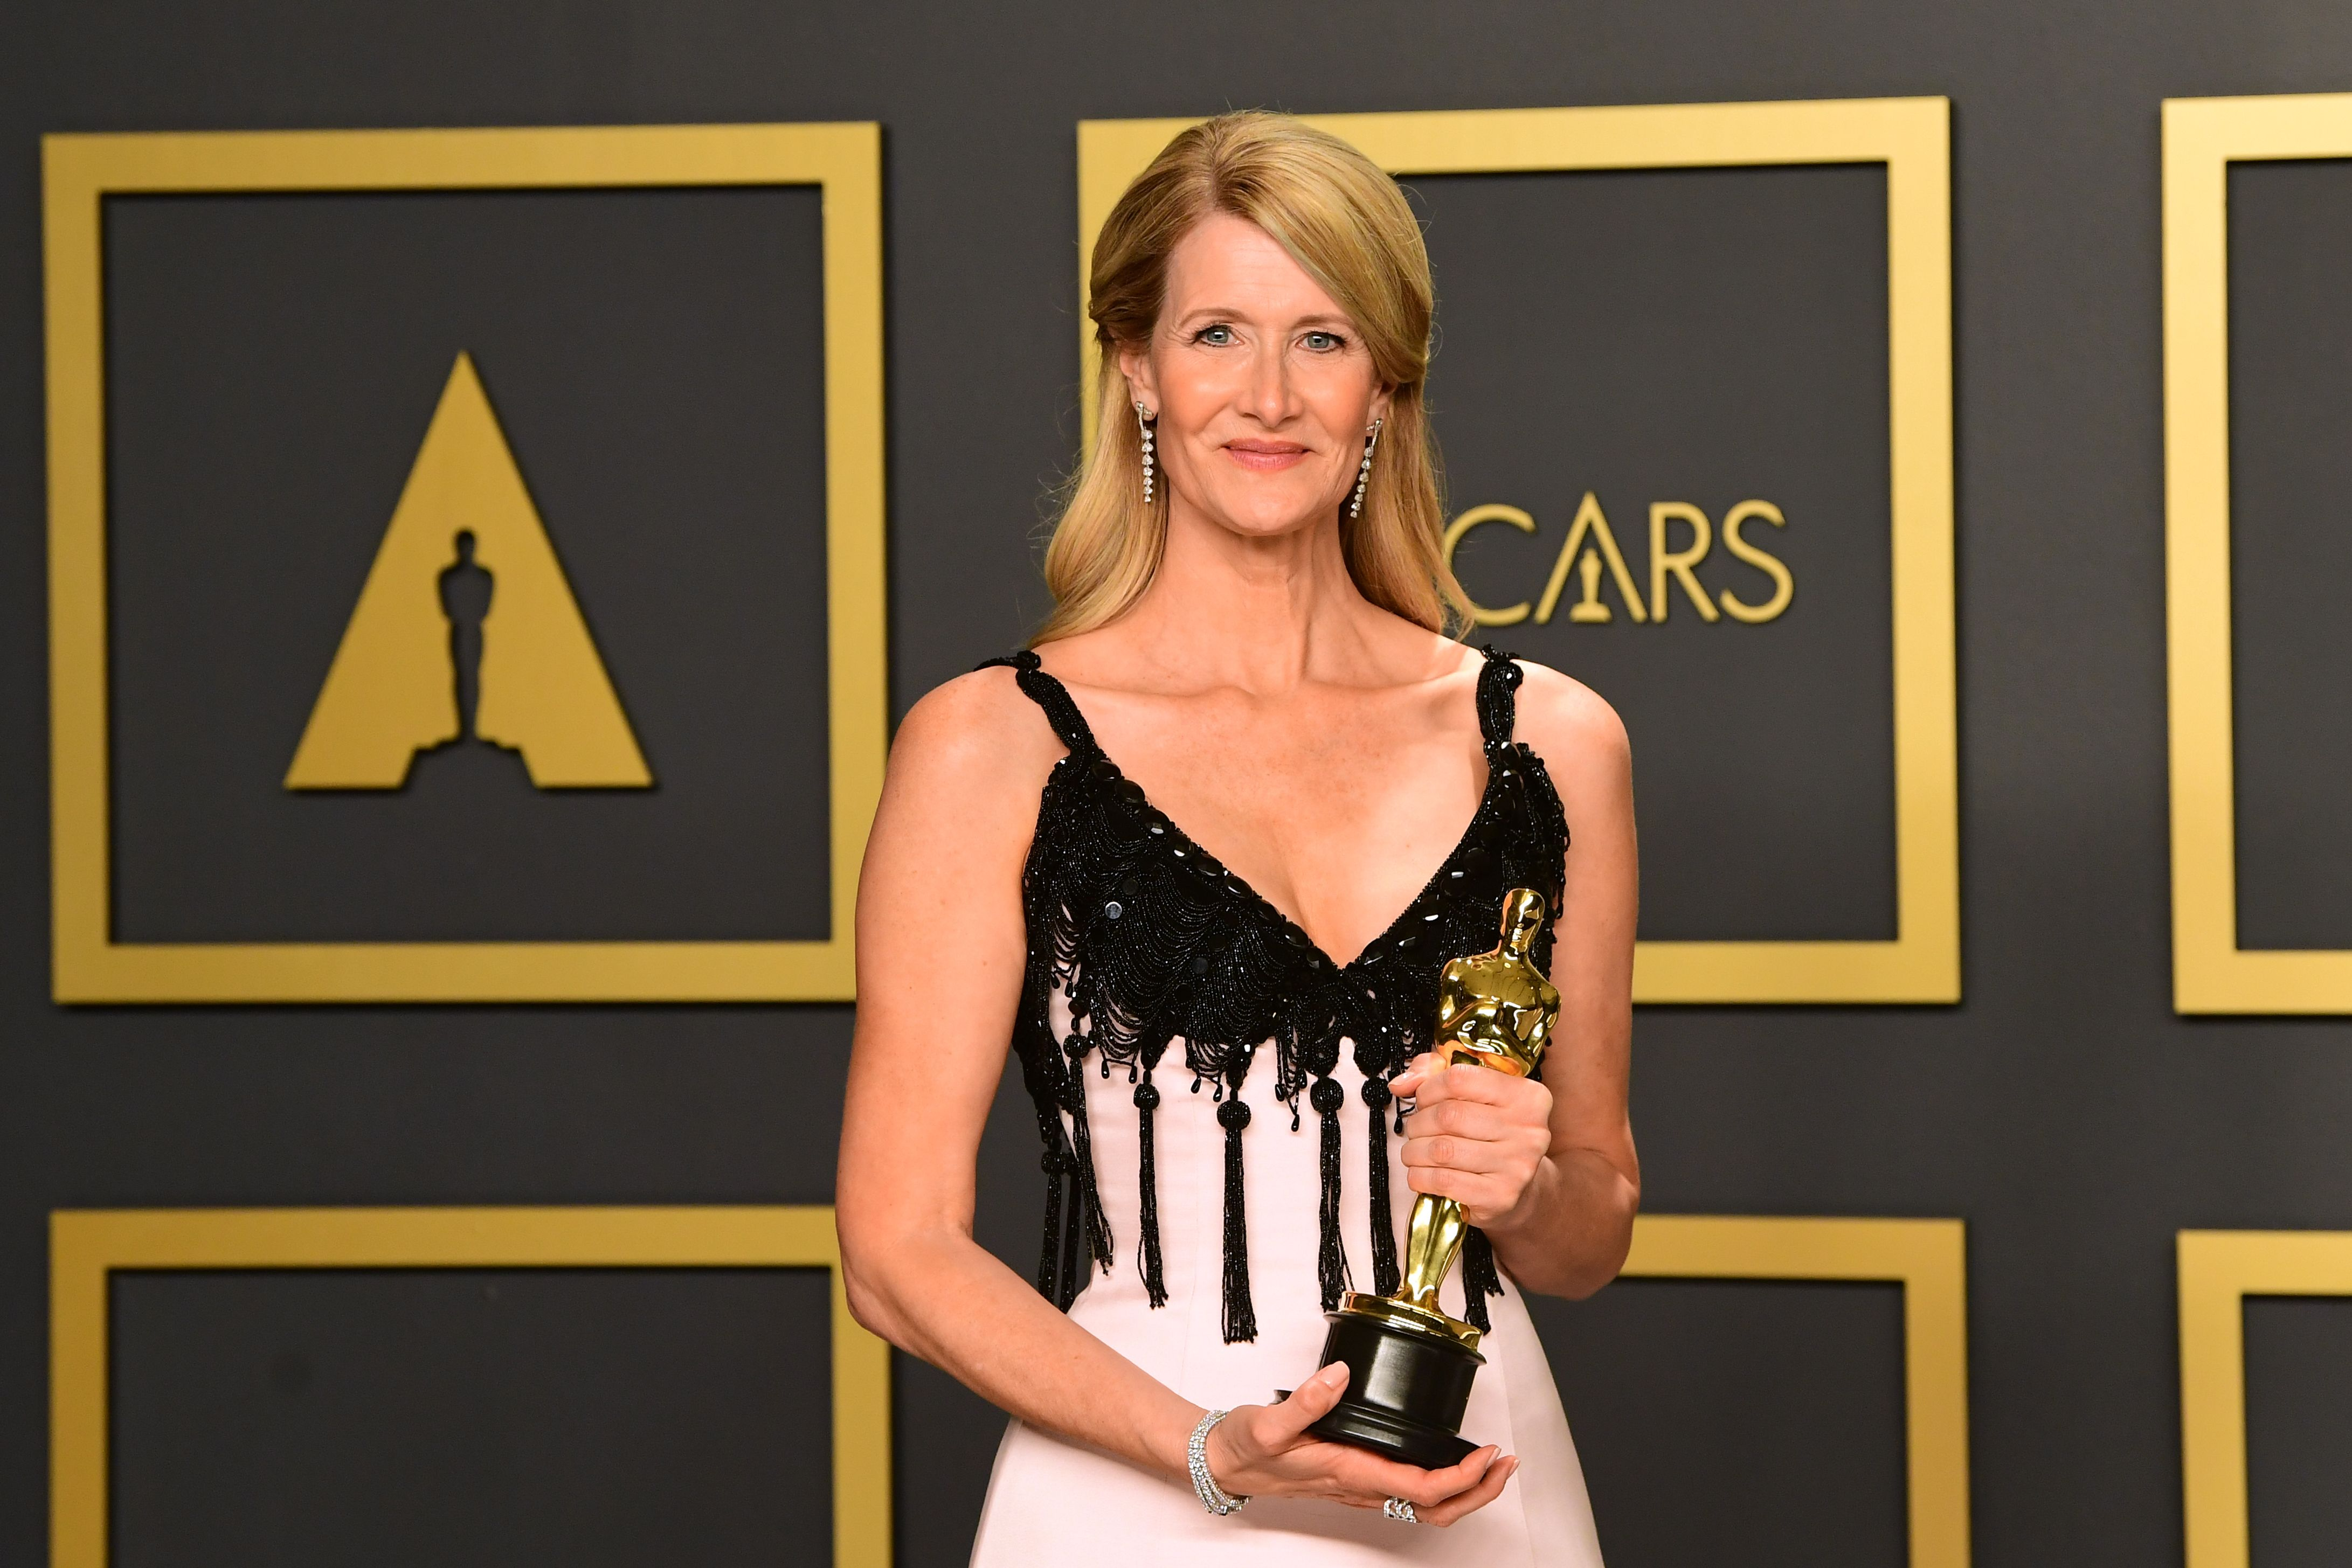 """US actress Laura Dern poses with the award for Best Actress in a Supporting Role for """"Marriage Story"""" in the press room during the 92nd Oscars at the Dolby Theater in Hollywood, California on February 9, 2020. (Photo by FREDERIC J. BROWN / AFP) (Photo by FREDERIC J. BROWN/AFP via Getty Images)"""